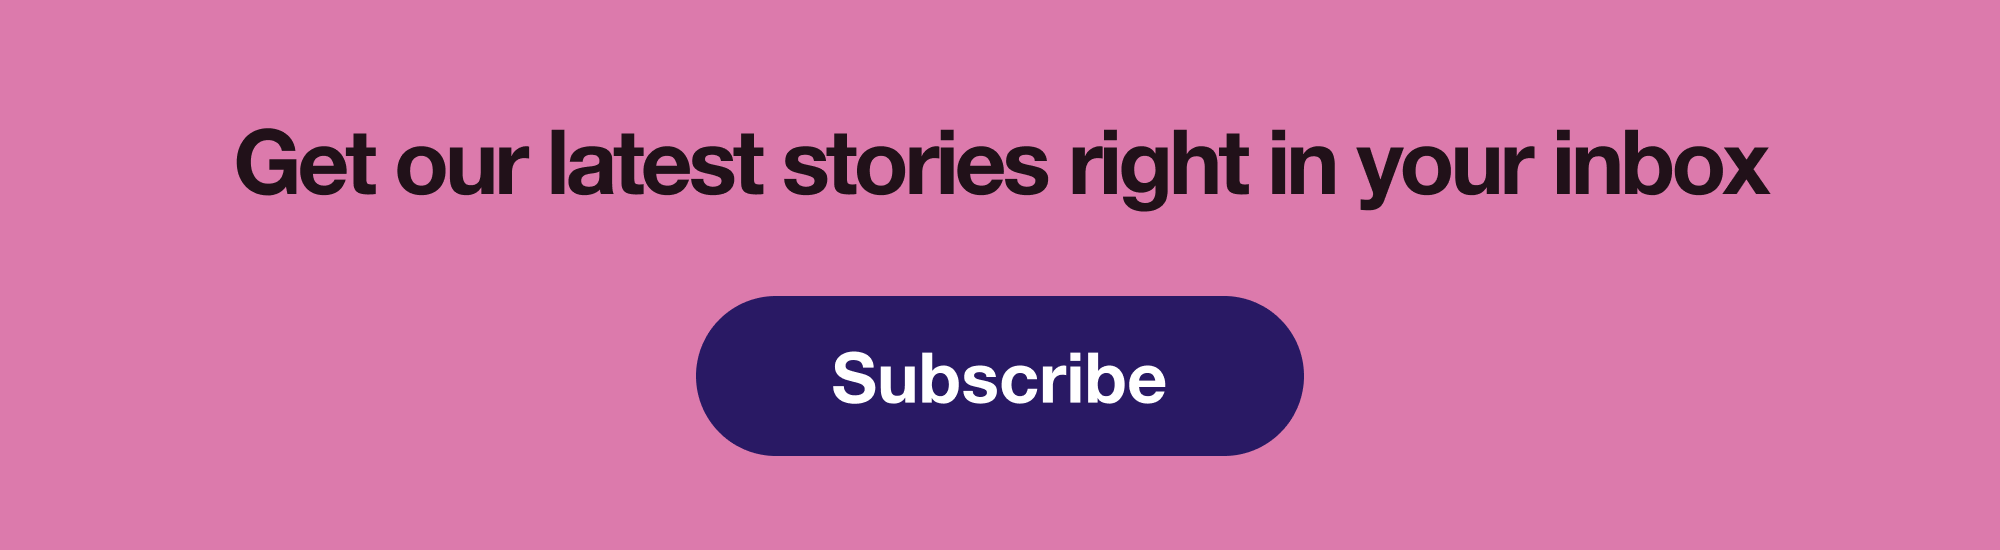 Subscribe to our email newsletter to get our latest stories right in your inbox